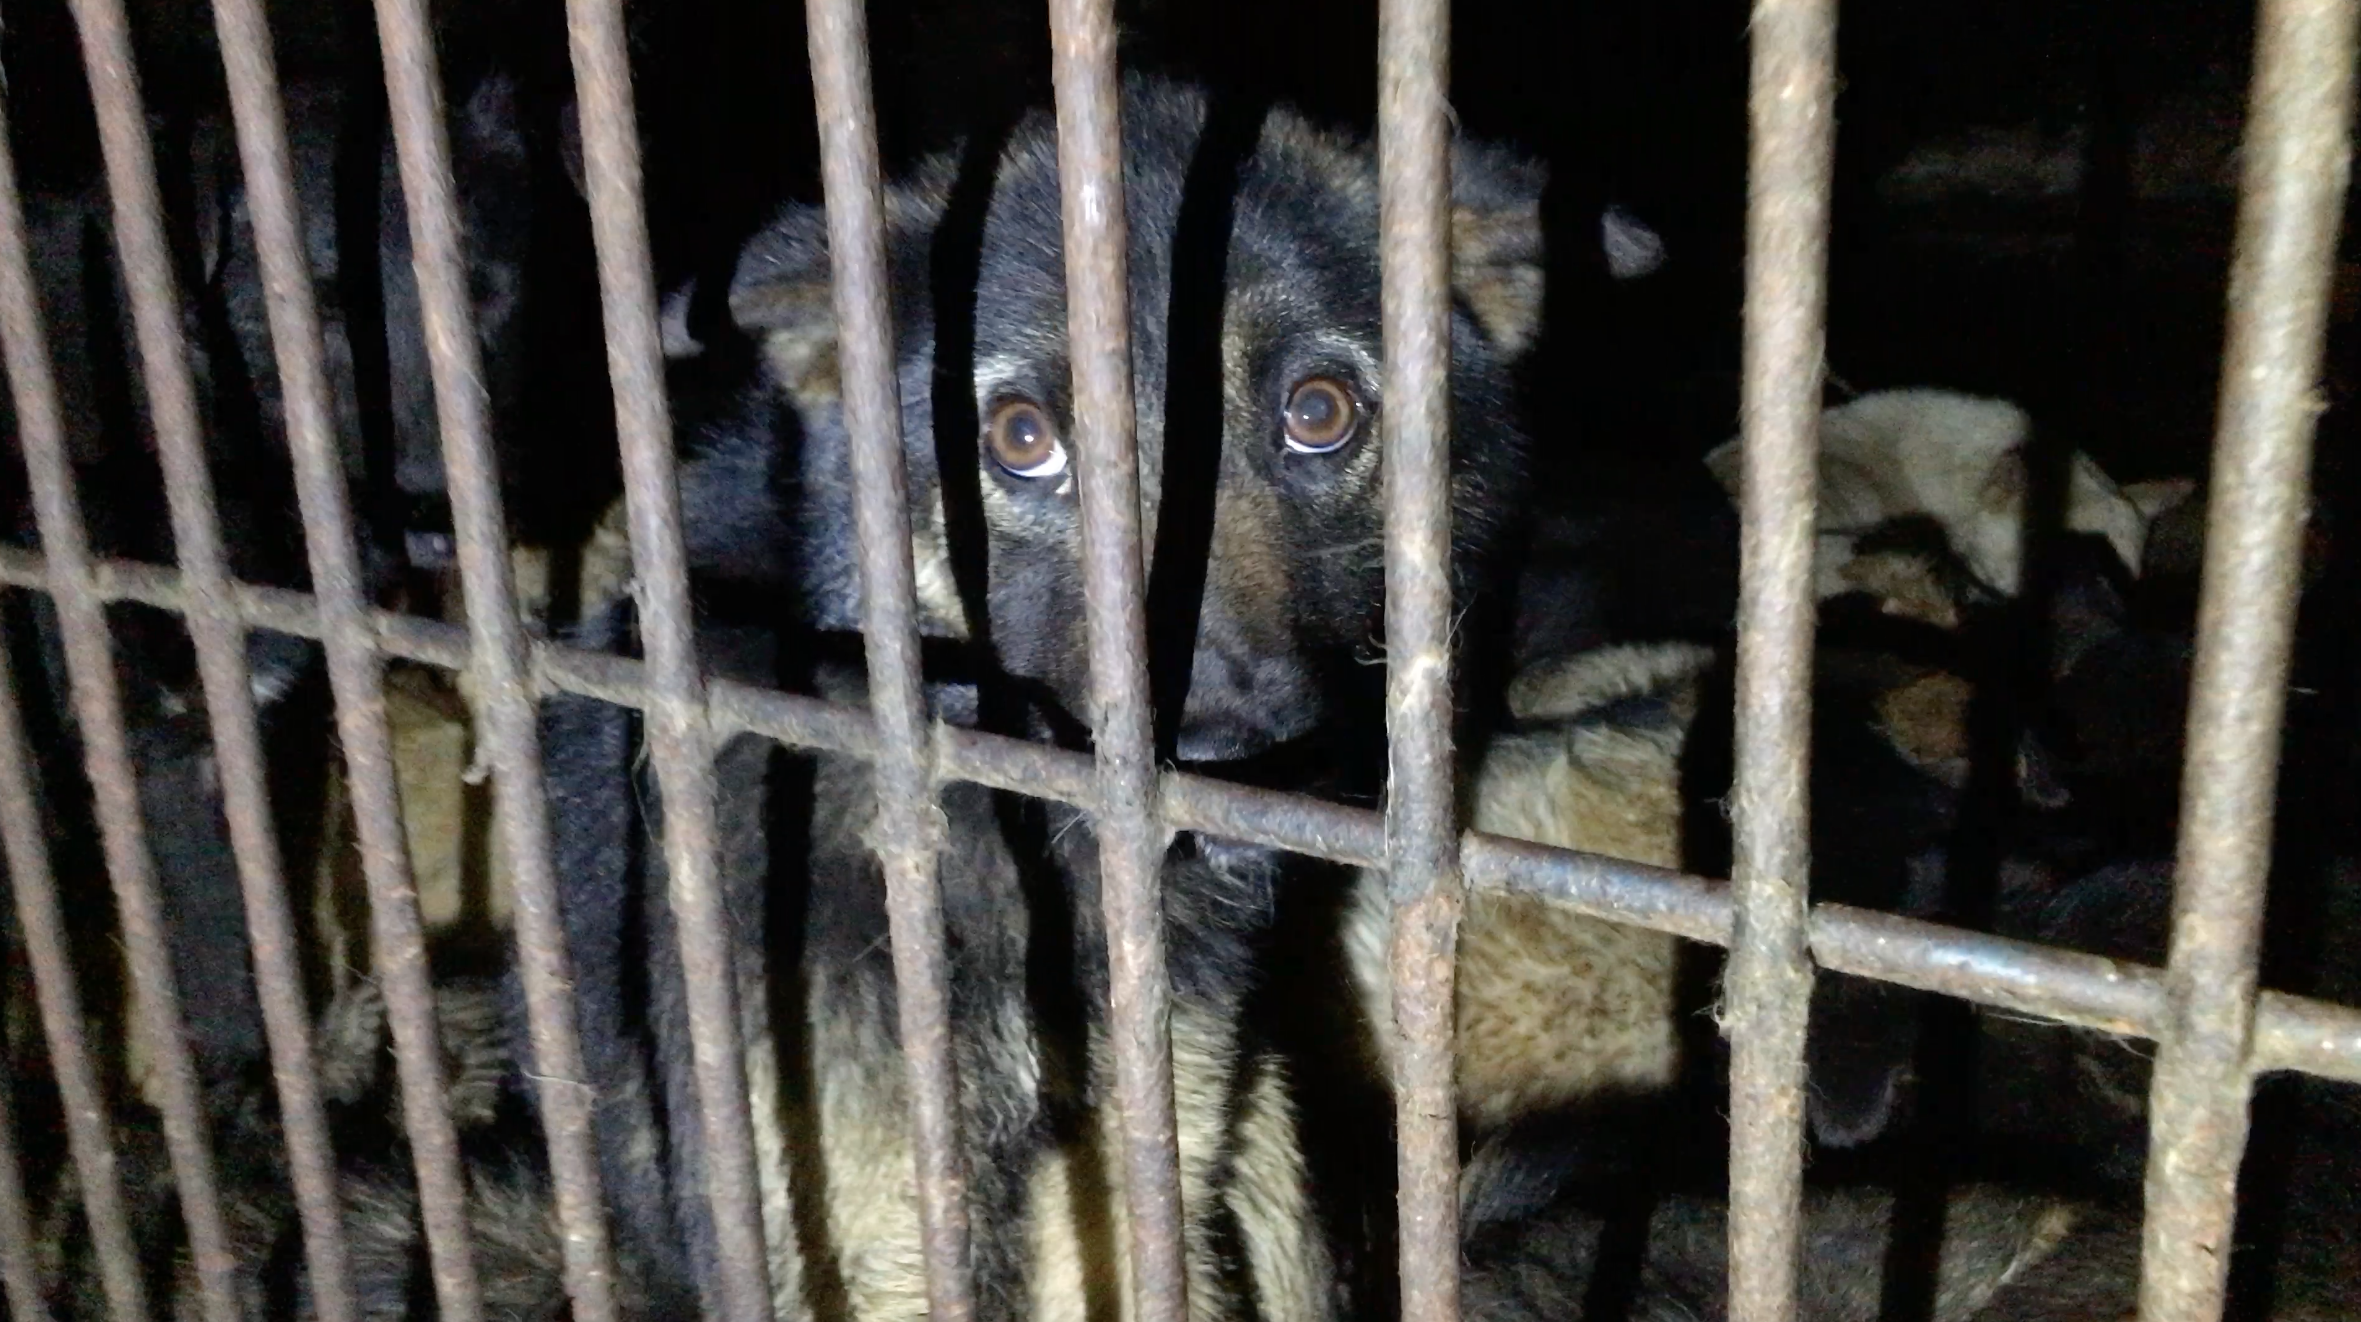 A brown-eyed German Shepherd puppy looks through the bars of a filthy cage.